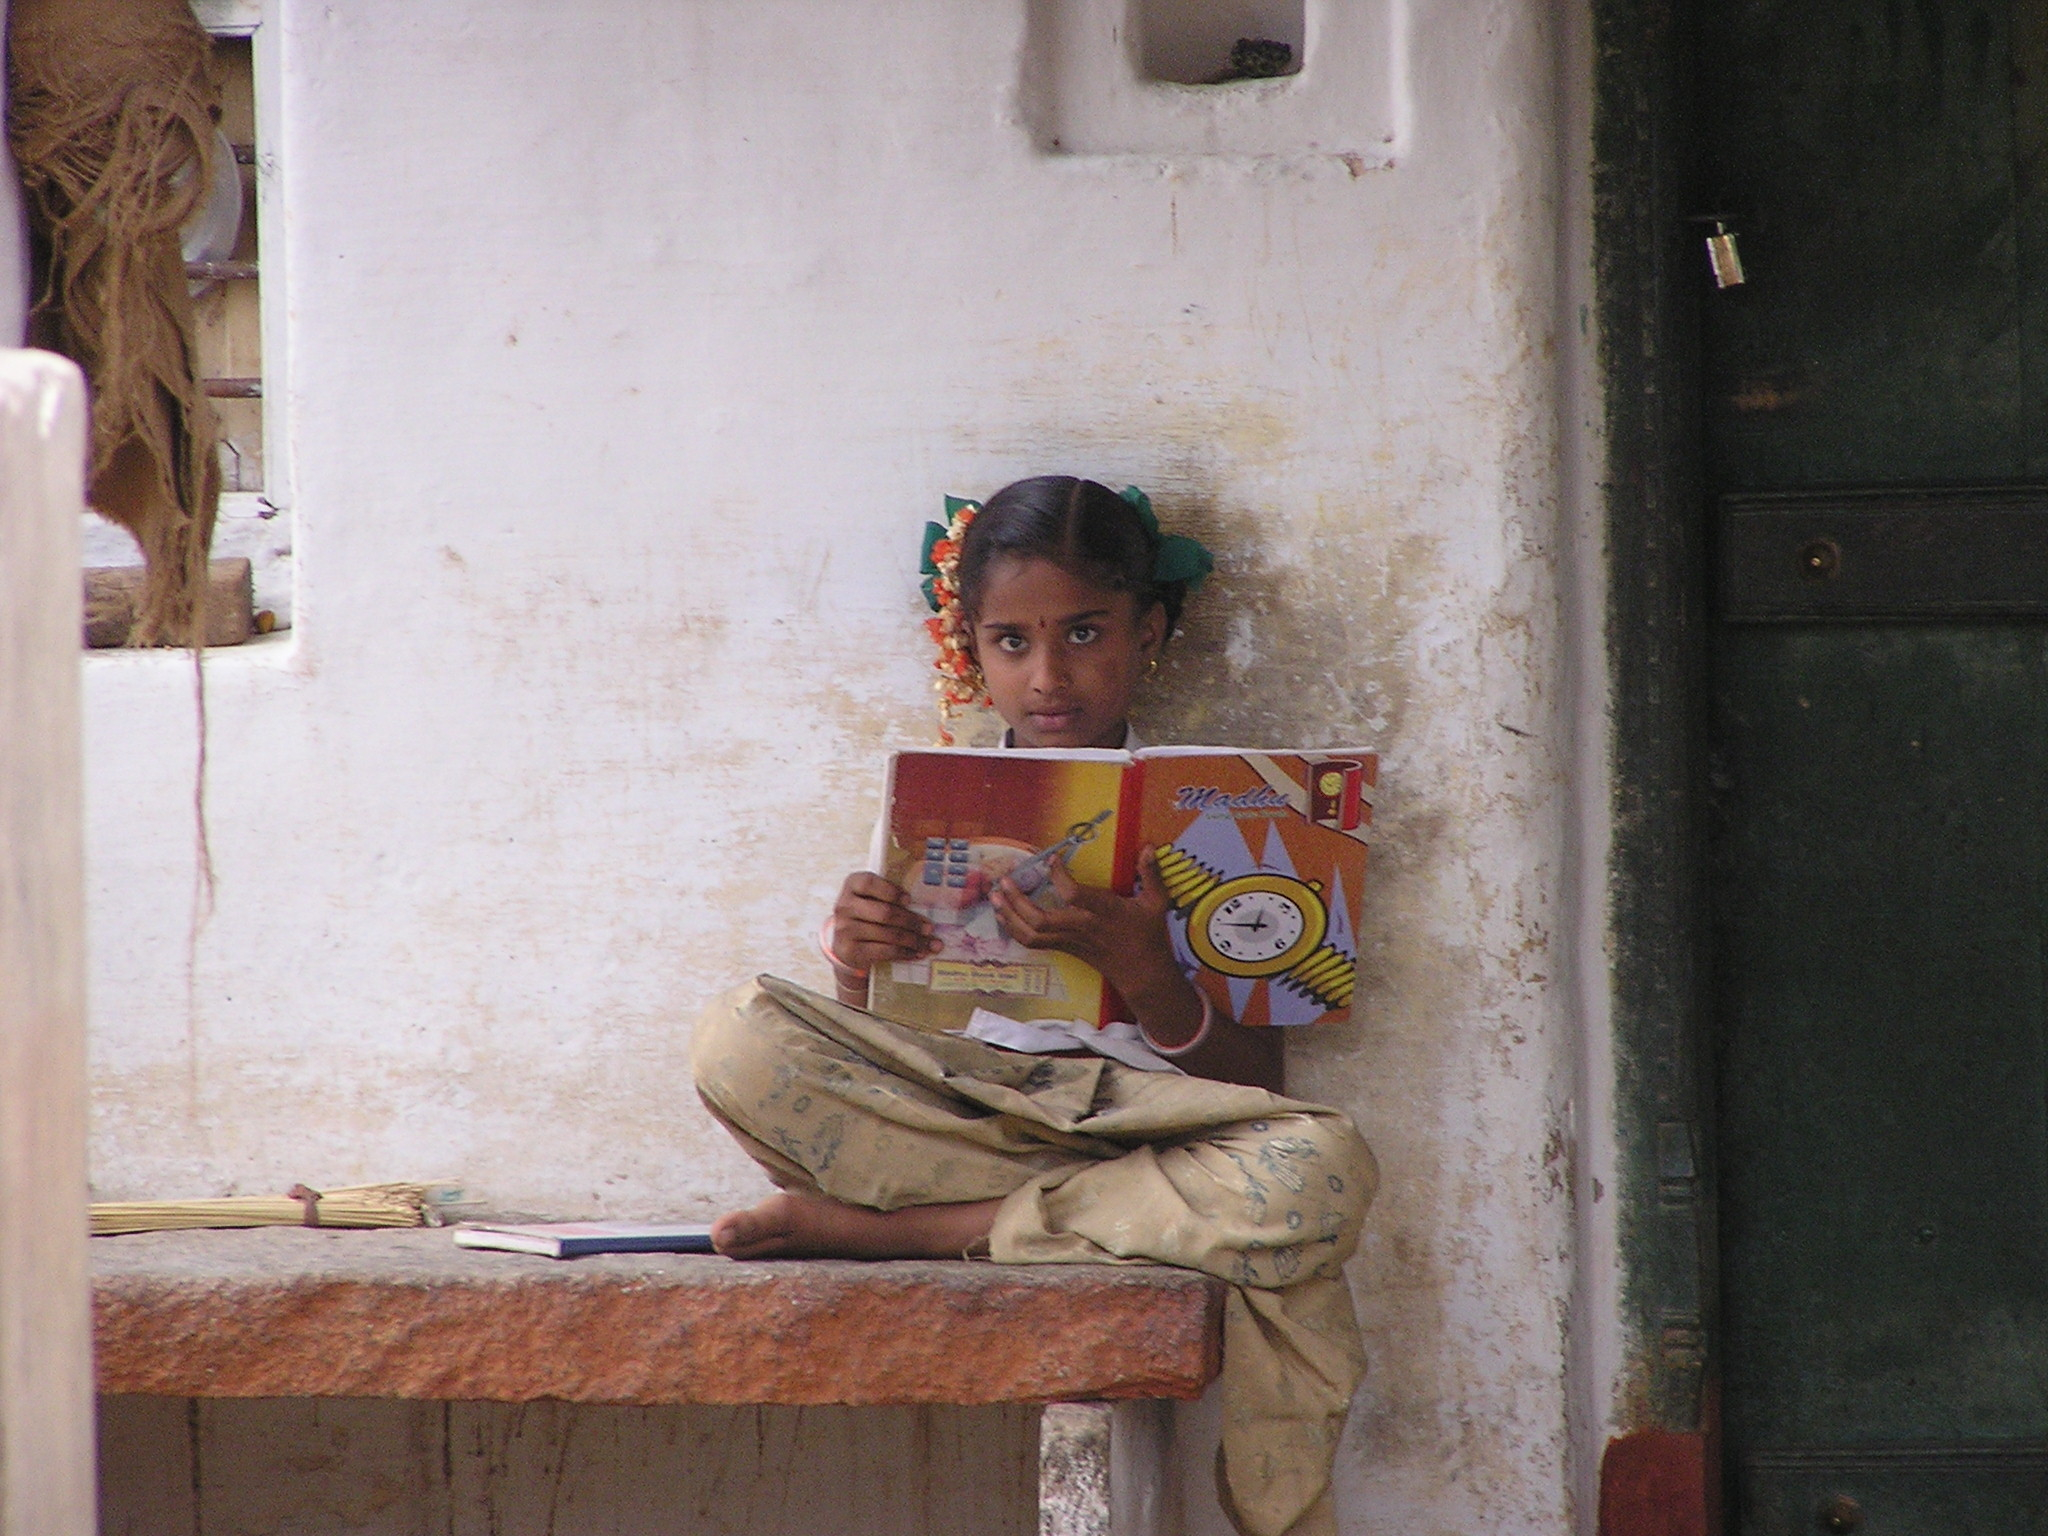 human development challenges illiteracy in india The 2016 human development report is the latest in the series of global human development reports published by the united nations development programme (undp) since 1990 as independent, analytically and empirically.